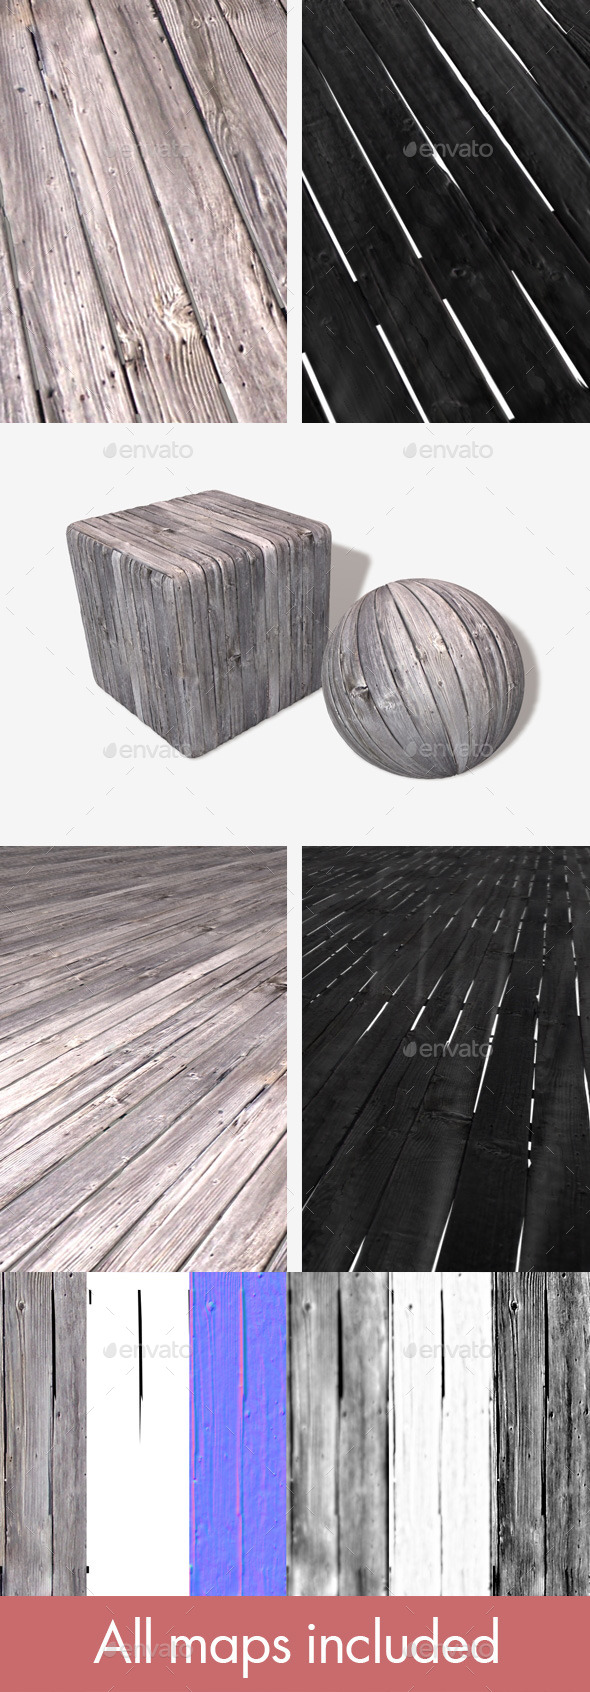 3DOcean Broken Wooden Planks Seamless Texture 11210312